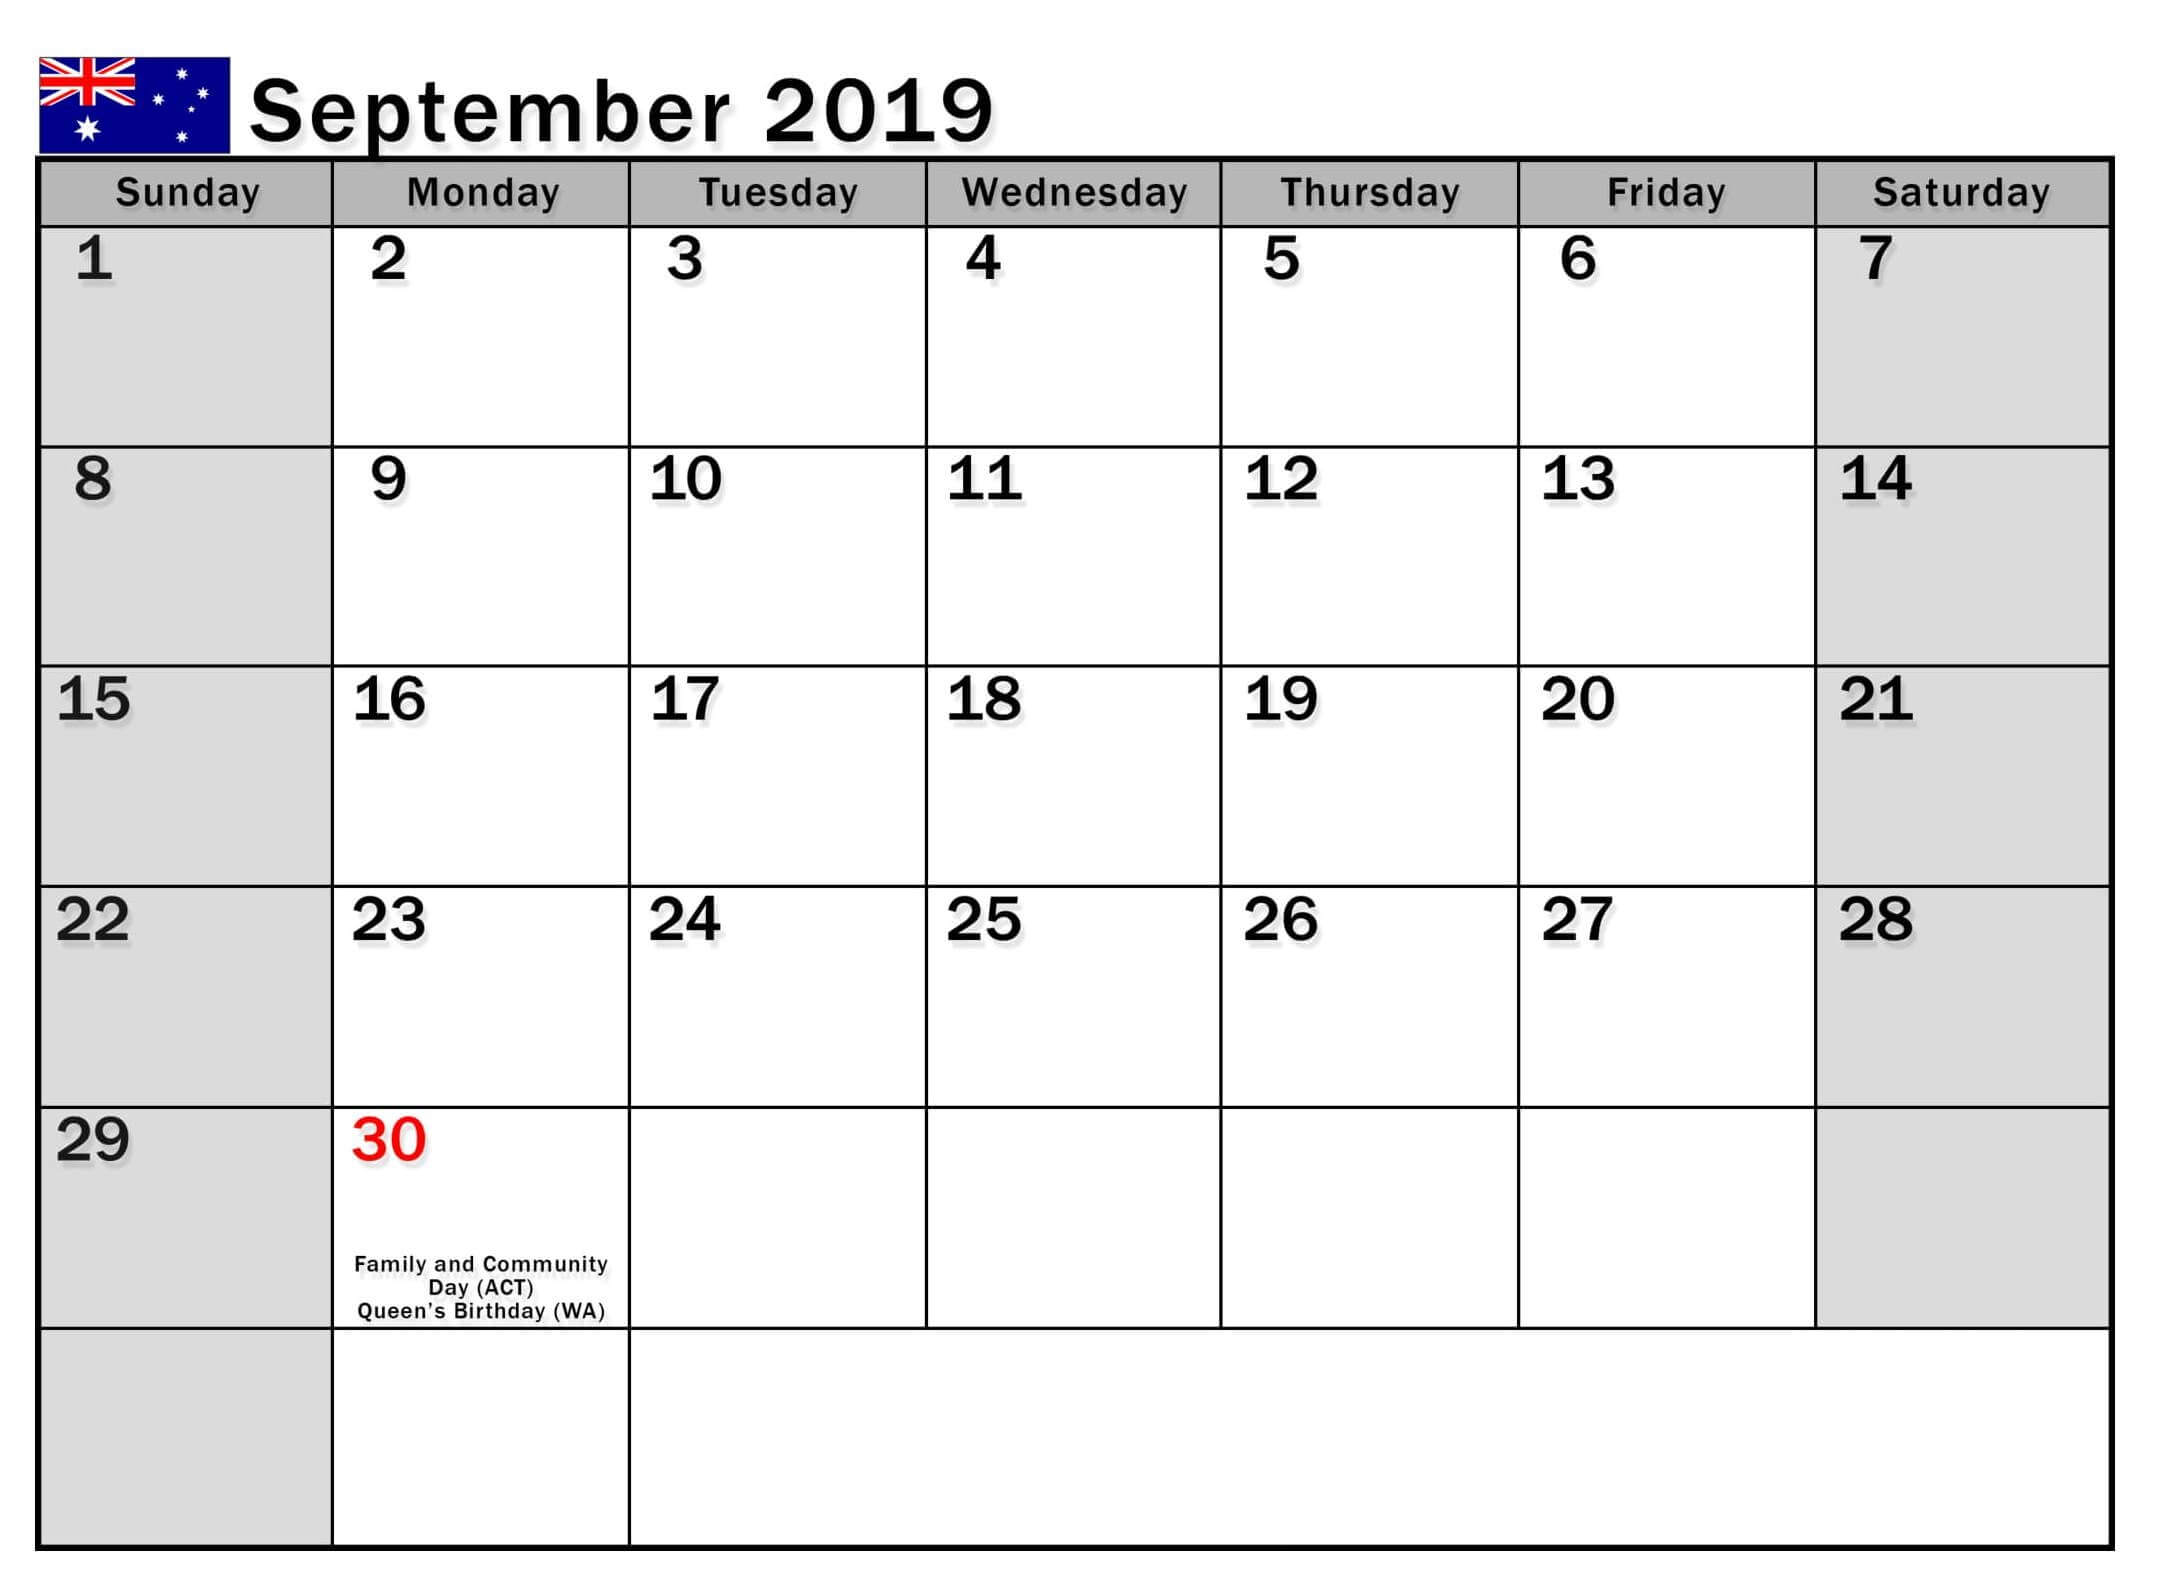 September 2019 Calendar Australia School Holidays